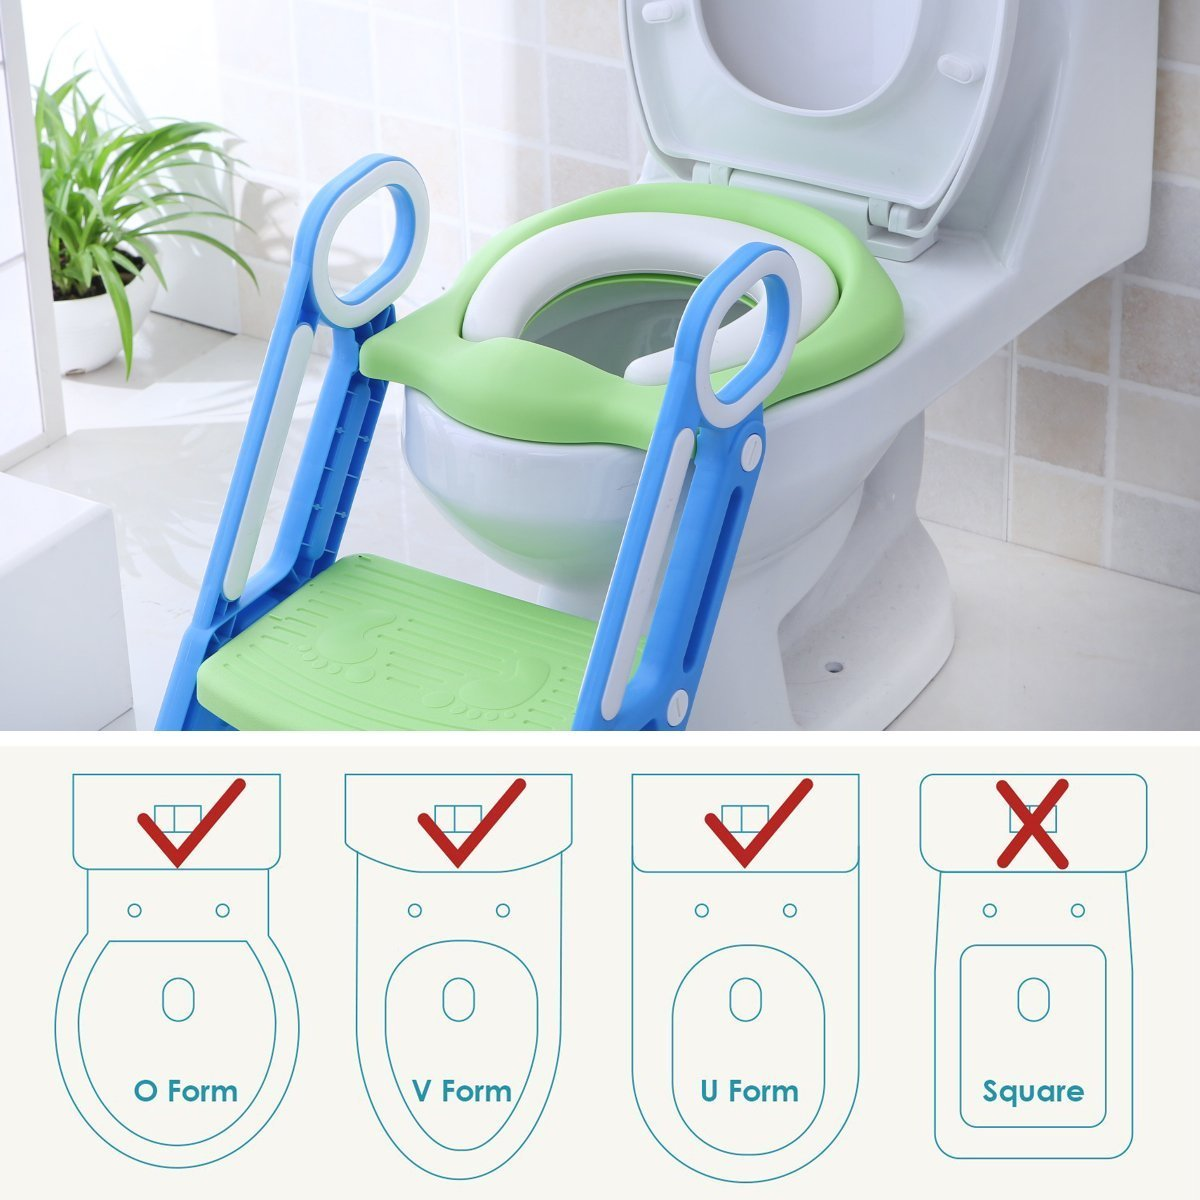 Mangohood Potty Training Toilet Seat with Step Stool Ladder for Boy and Girl Baby Toddler Kid Children's Toilet Training Seat Chair with Soft Padded Seat and Sturdy Non-Slip Wide Step (Blue Green) by Mangohood (Image #7)